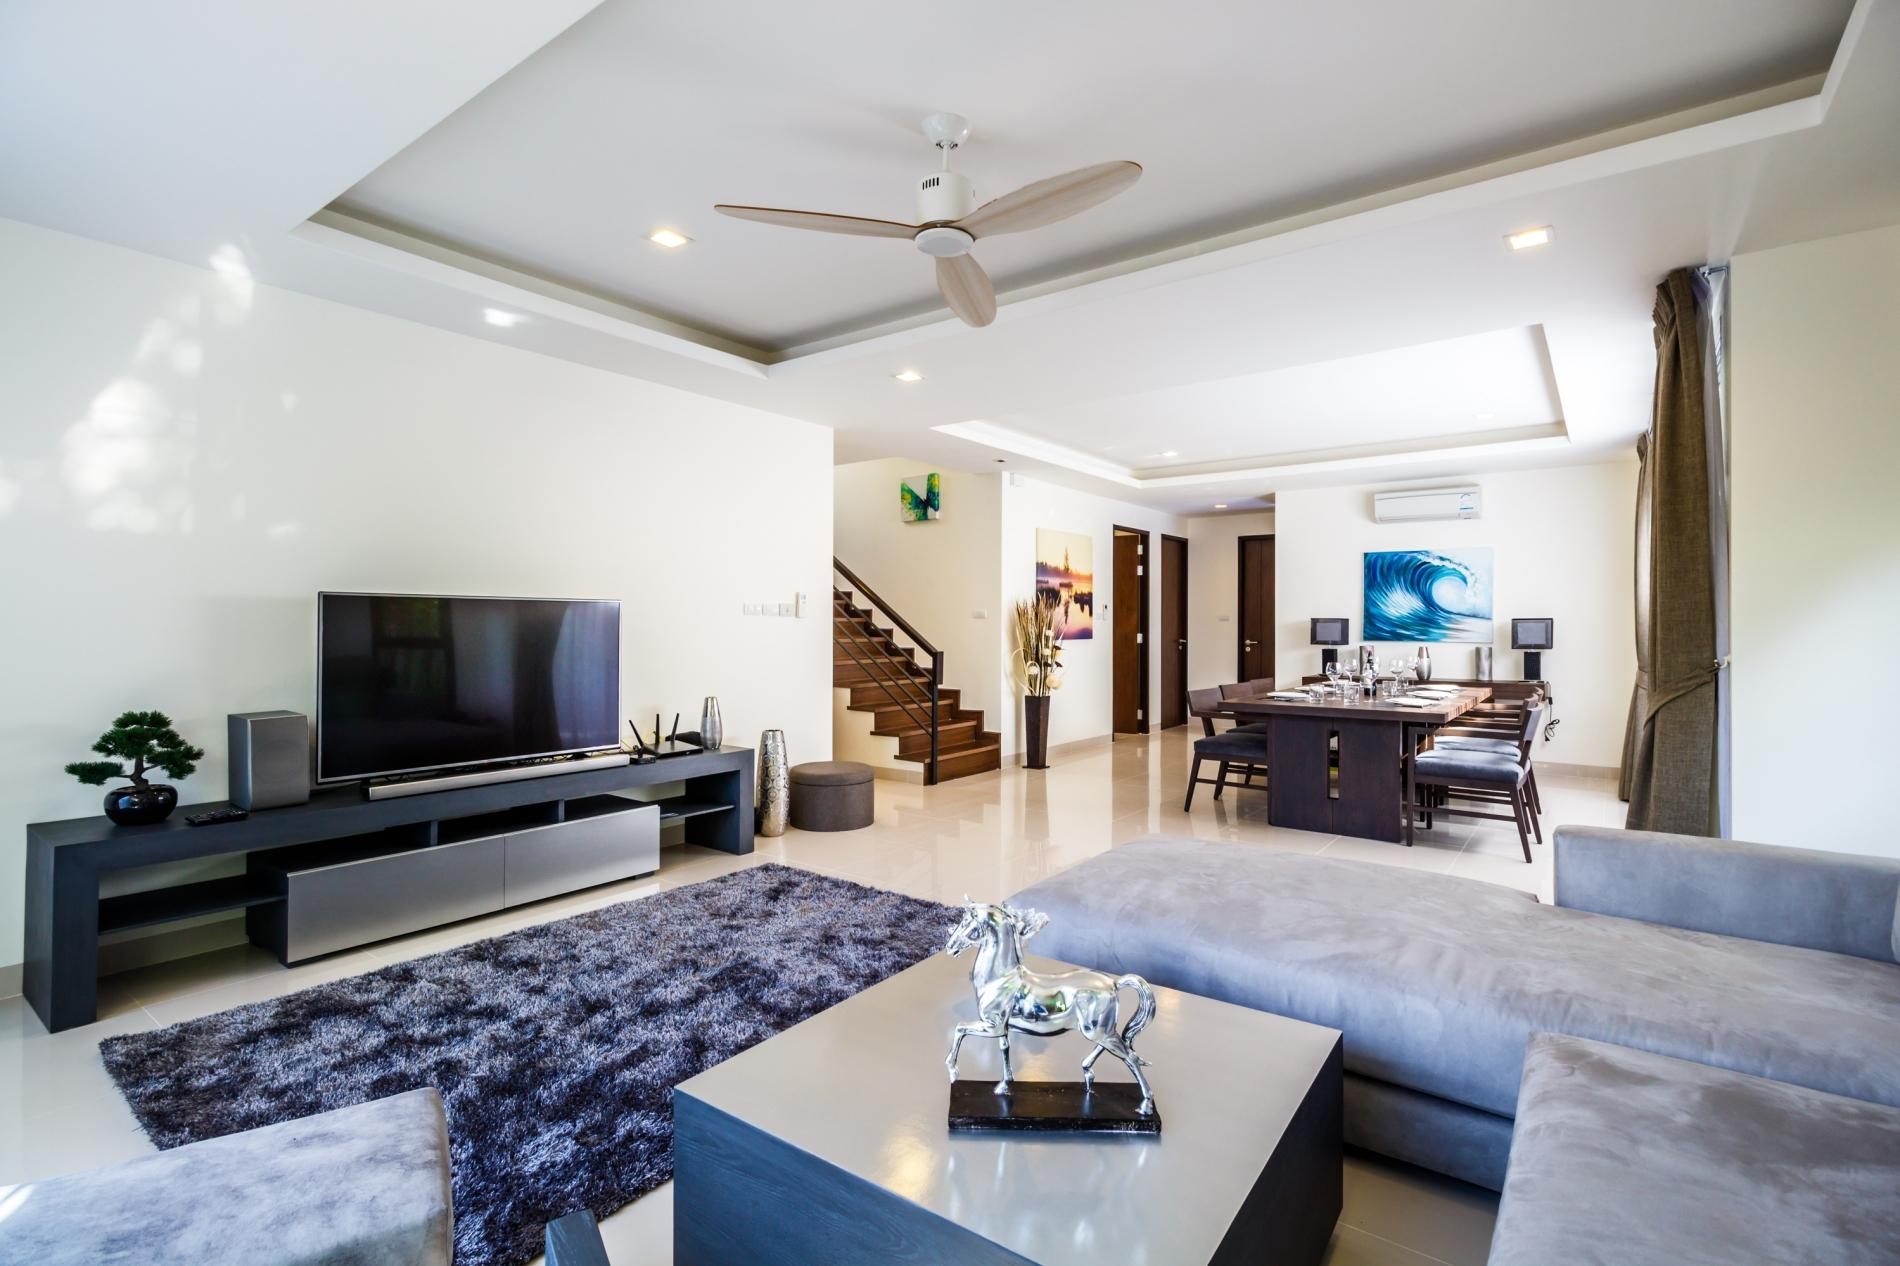 LP101 - Private rooftop pool villa in Laguna for 9 people, near restaurants and shops photo 15927885